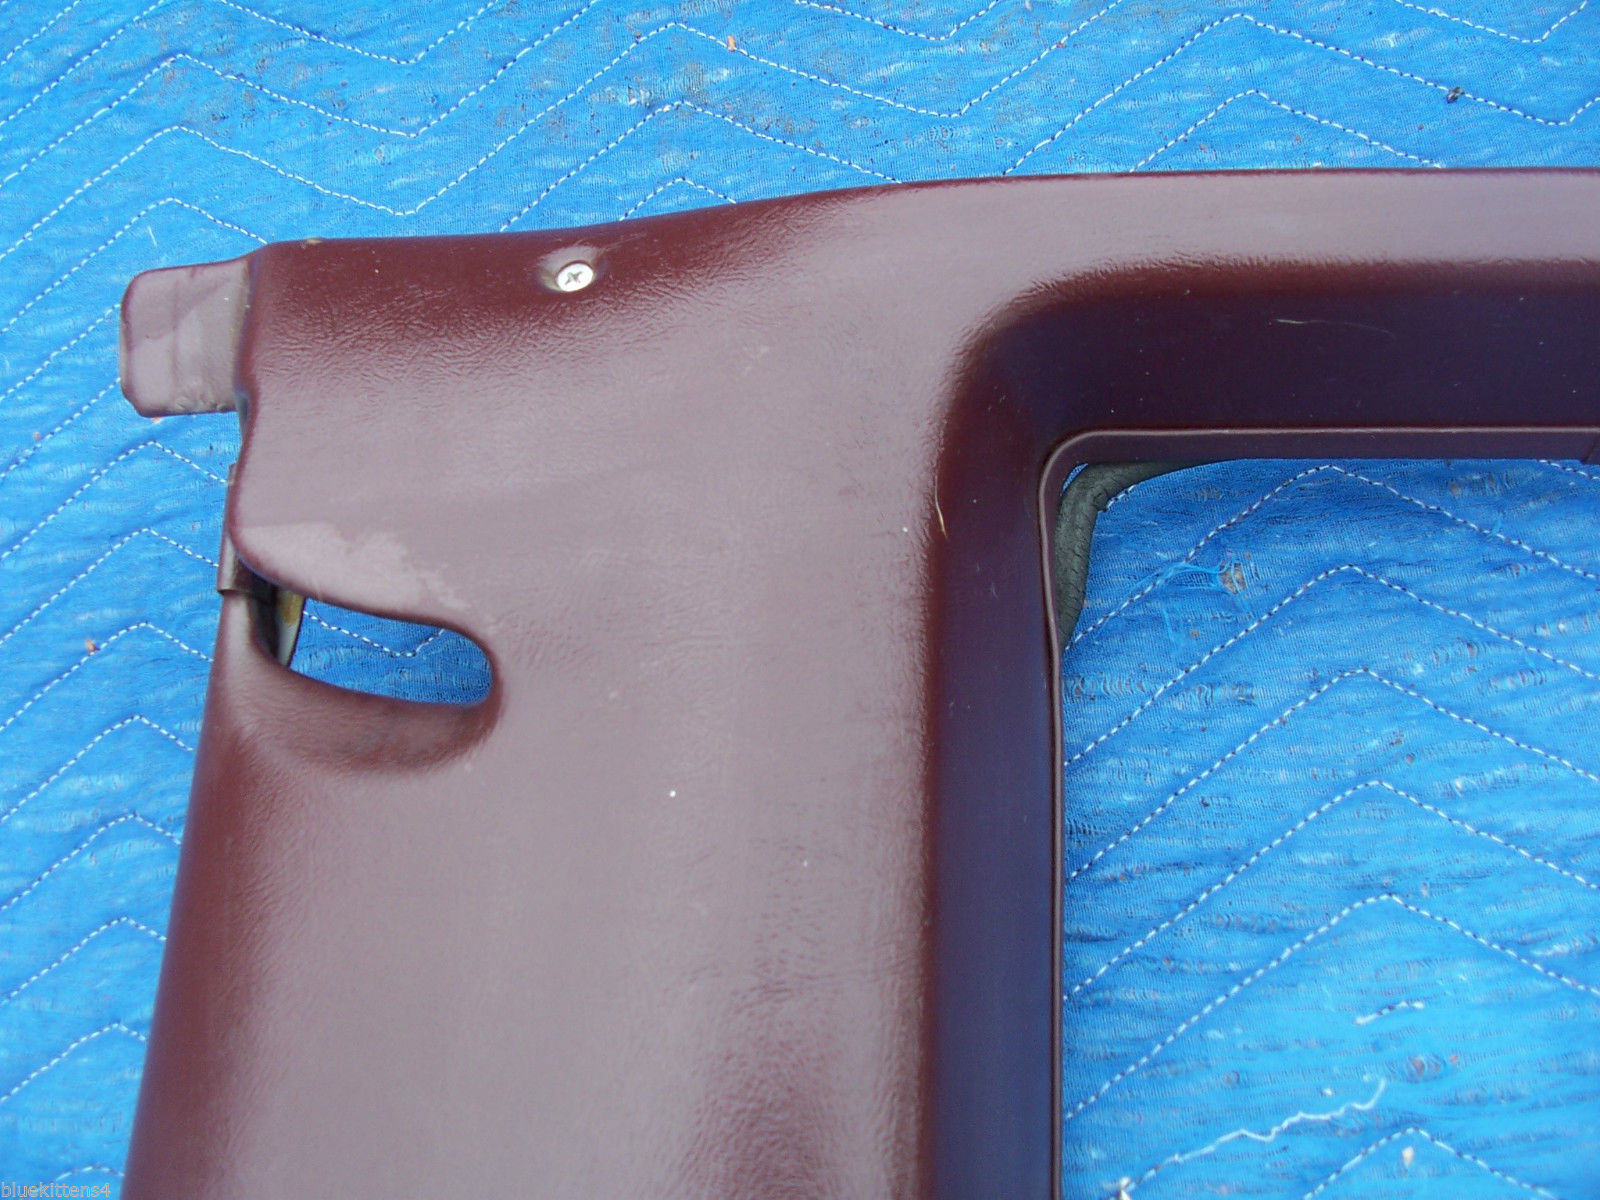 1977 COUPE DEVILLE RIGHT OPERA WINDOW TRIM PANEL OEM USED CADILLAC PART image 2